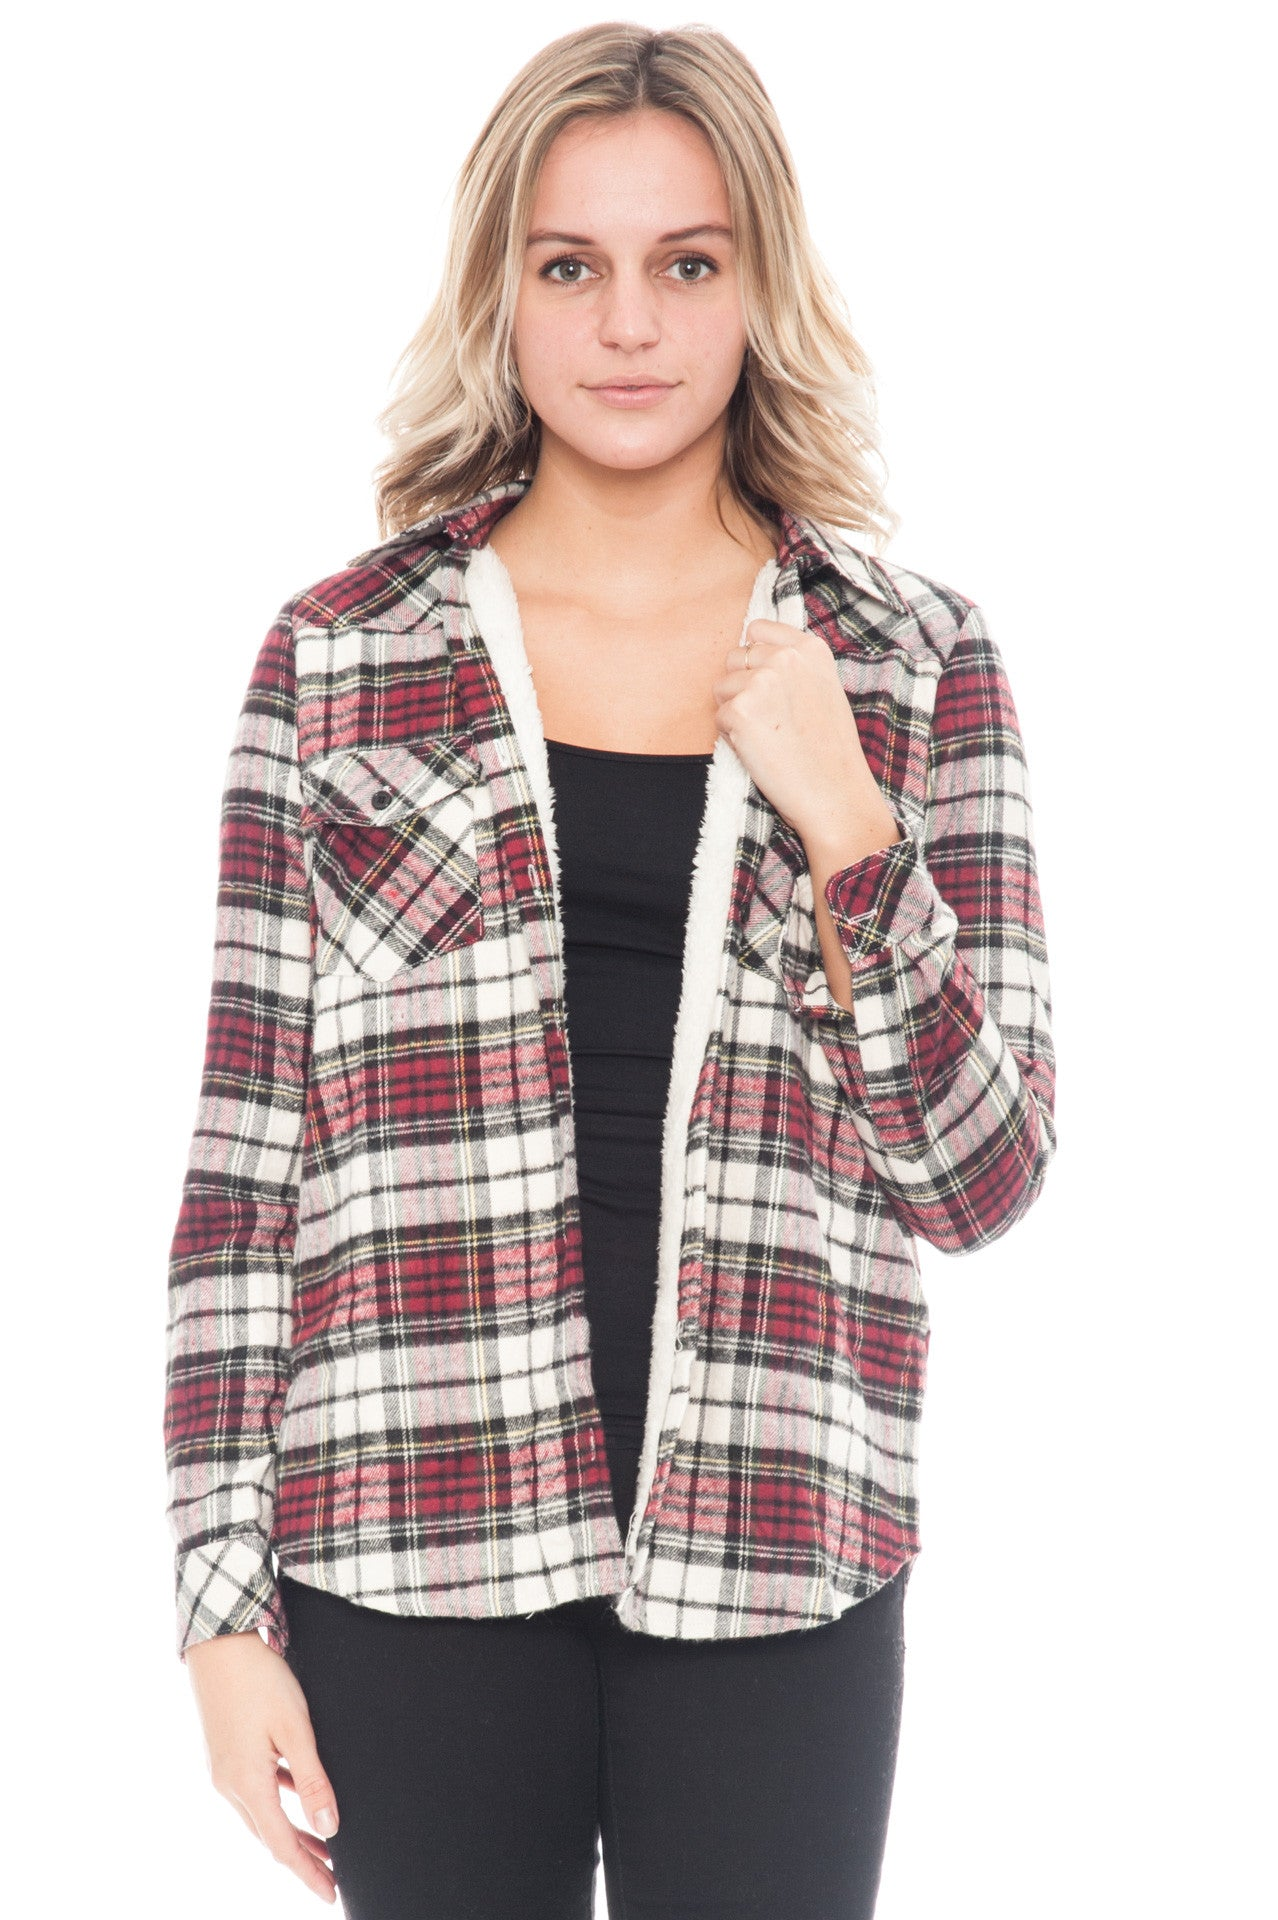 Shirt - Plaid Flannel Button Up with Sherpa Lining By Paper Crane (Final Sale)